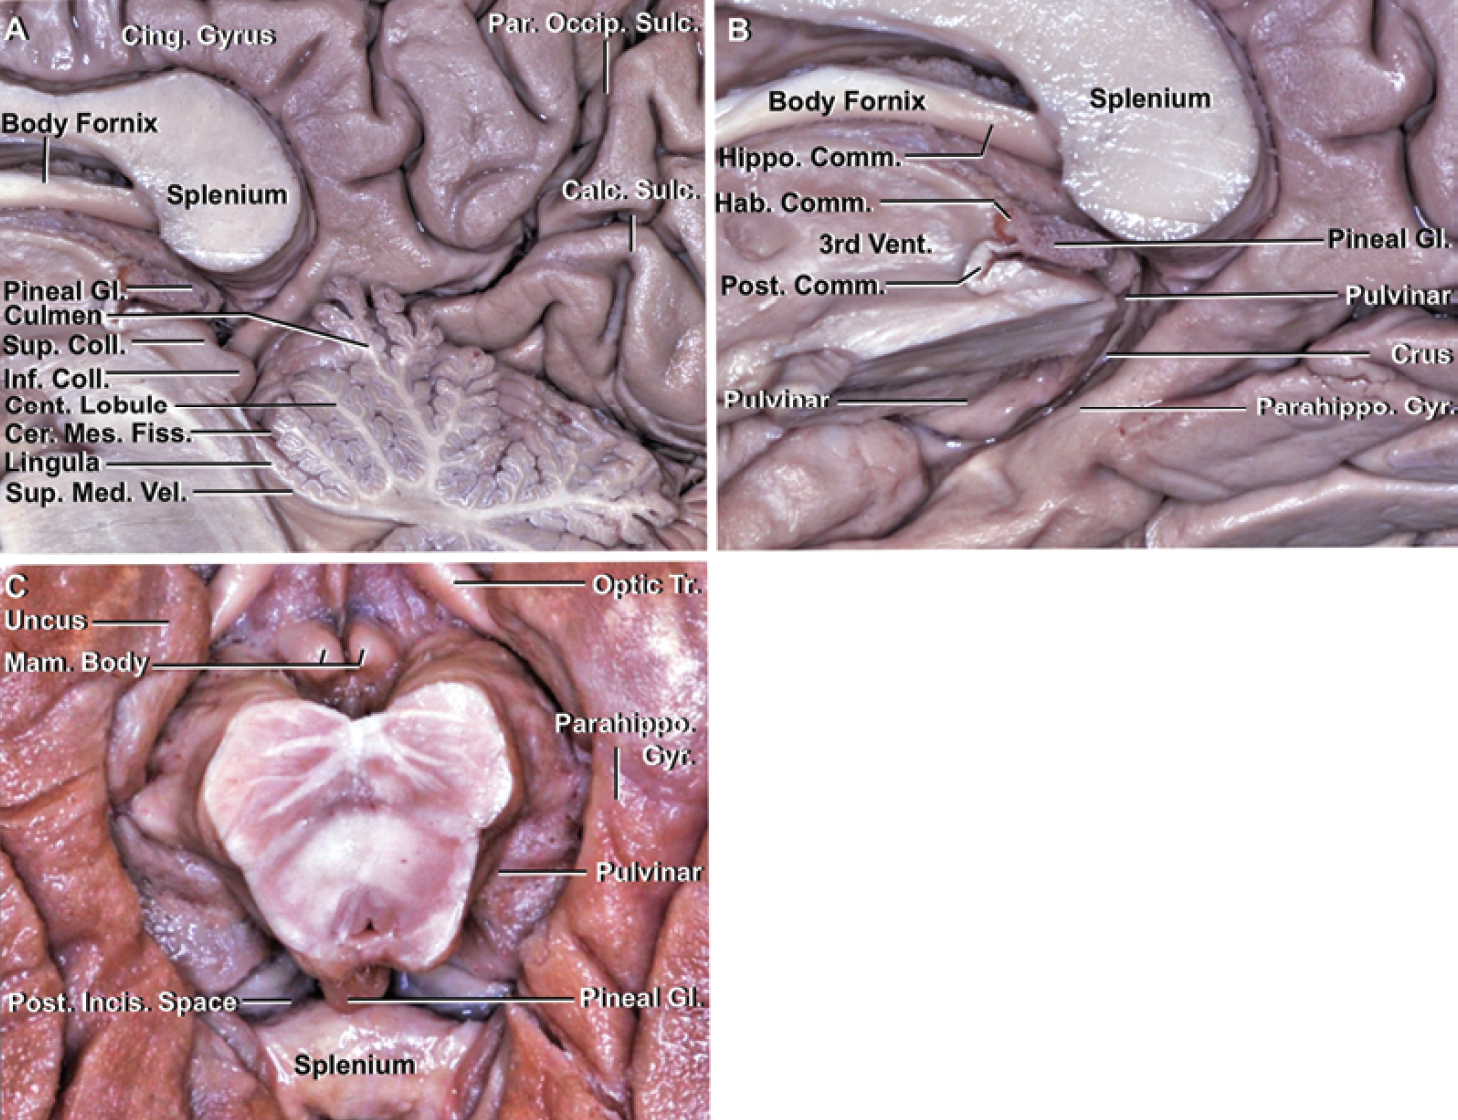 Figure. 3. Neural relationships of the posterior incisural space. A: Sagittal view of the posterior incisura space after removal of the left cerebral hemisphere, cerebellum, and brainstem. The anterior wall of the posterior incisural space is formed by the pineal gland, the superior and inferior colliculi, and the lingula of the vermis. The roof of the posterior incisural space is formed by the lower surface of the splenium and posterior part of the body of the fornix. The floor of the posterior incisural space is formed by the culmen of the vermis and central lobule. The posterior incisural space extends inferiorly into the cerebellomesencephalic fissure. B: Right posterosuperior view after removal of the right half of the brainstem at the level of the superior colliculus. The habenular and posterior commissures form the attachment of the gland to the posterior part of the third ventricle. The pulvinar, crus of the fornix, and parahippocampal gyrus form the lateral wall of the posterior incisural space. C: Inferior view of the medial temporal lobe and lateral wall of the posterior incisural space. The brainstem and cerebellum have been removed. The pulvinar, located just lateral to the pineal body, and the crus of the fornix, located posterior to the pulvinar, form the lateral wall of the posterior incisura space. Cer. Mes. = cerebellomesencephalic; Coll. = colliculus; Comm. = commissure; Hab. = habenular; Hippo. = hippocampal; Mam. = mammillary; Tr. = tract. (Images courtesy of AL Rhoton, Jr.)